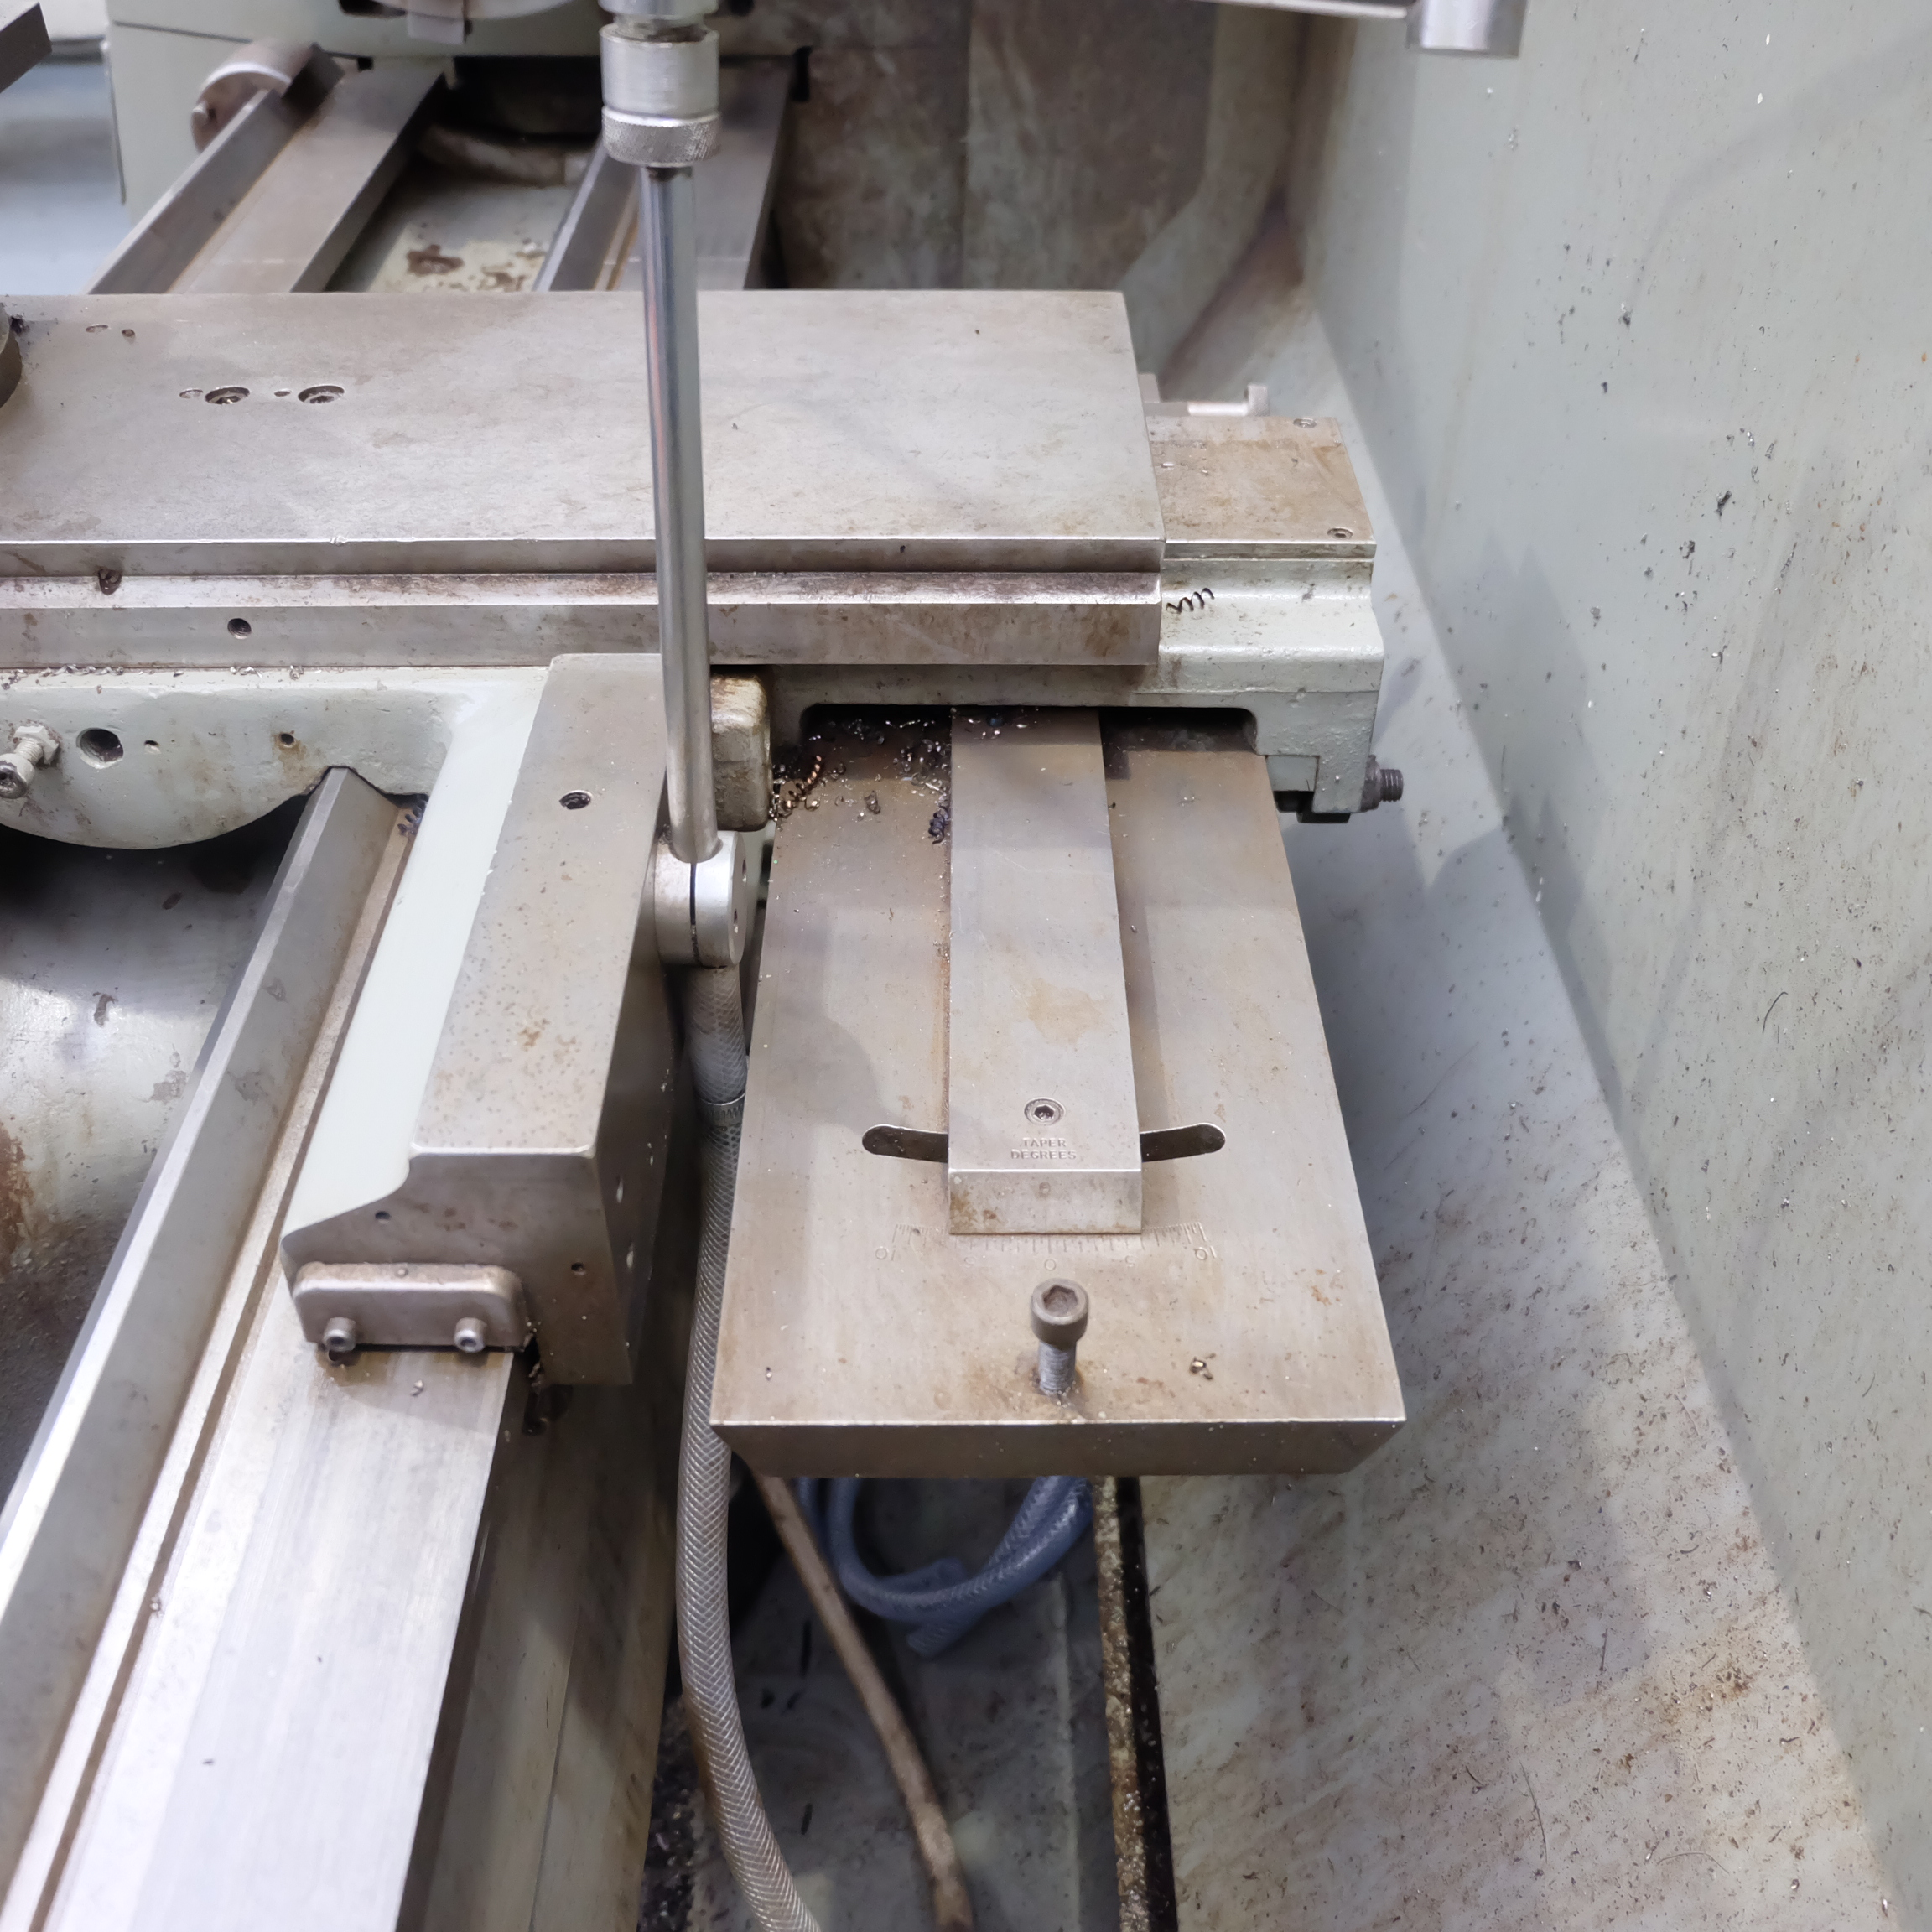 Colchester Mascot 1600 Gap Bed Centre Lathe. - Image 8 of 10